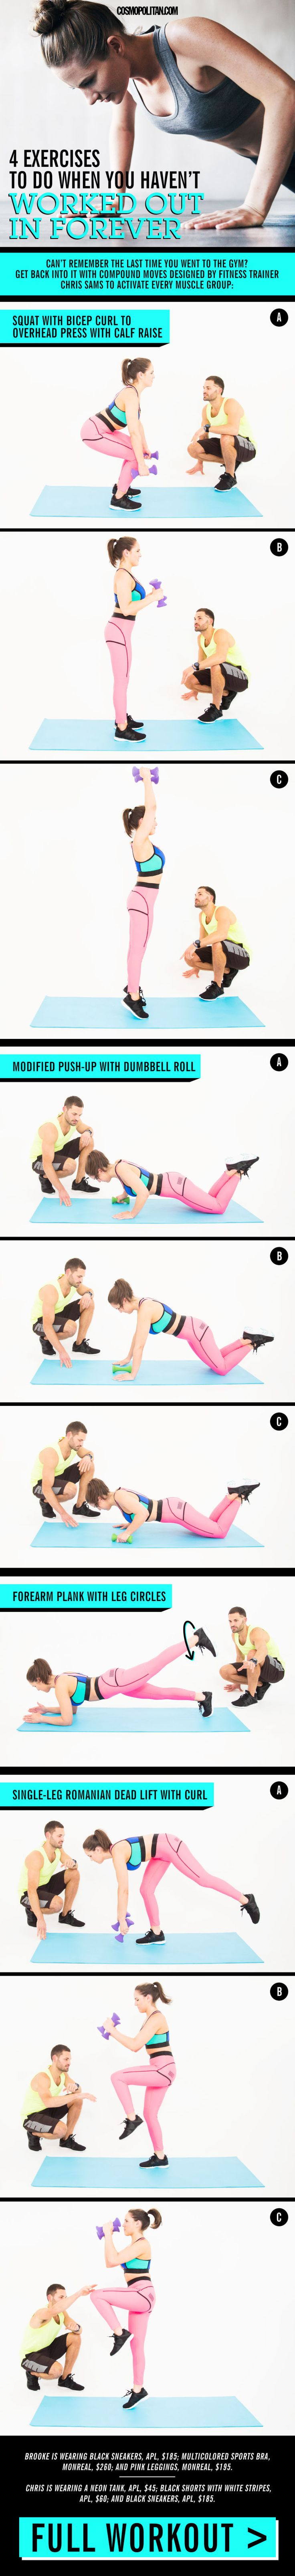 EASY AND SIMPLE WORKOUTS FOR BEGINNERS: Haven't been to the gym in forever? Or trying to workout for the first time? Just practice these four moves, designed by NYC-based fitness trainer Chris Sams. The workout is comprised of compound movements that strengthen every major muscle group while revving up your heart rate — so you can check the boxes on cardio and weight training in the least amount of time. Click through for the simple full-body workout you can do at home or at the gym — these…